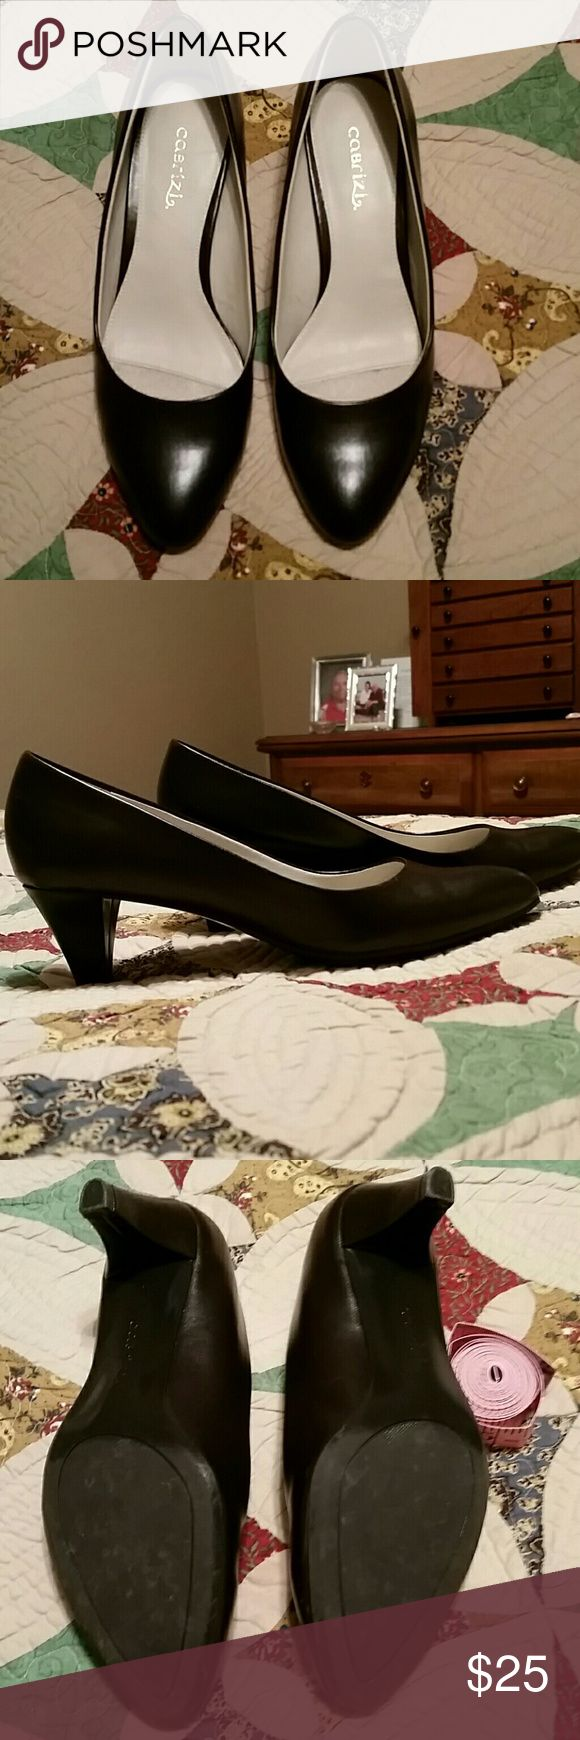 Ladies shoes Like new dark brown heels. Excellent condition.  1 3/4 inch heels. Faux leather. Cobrizi Shoes Heels